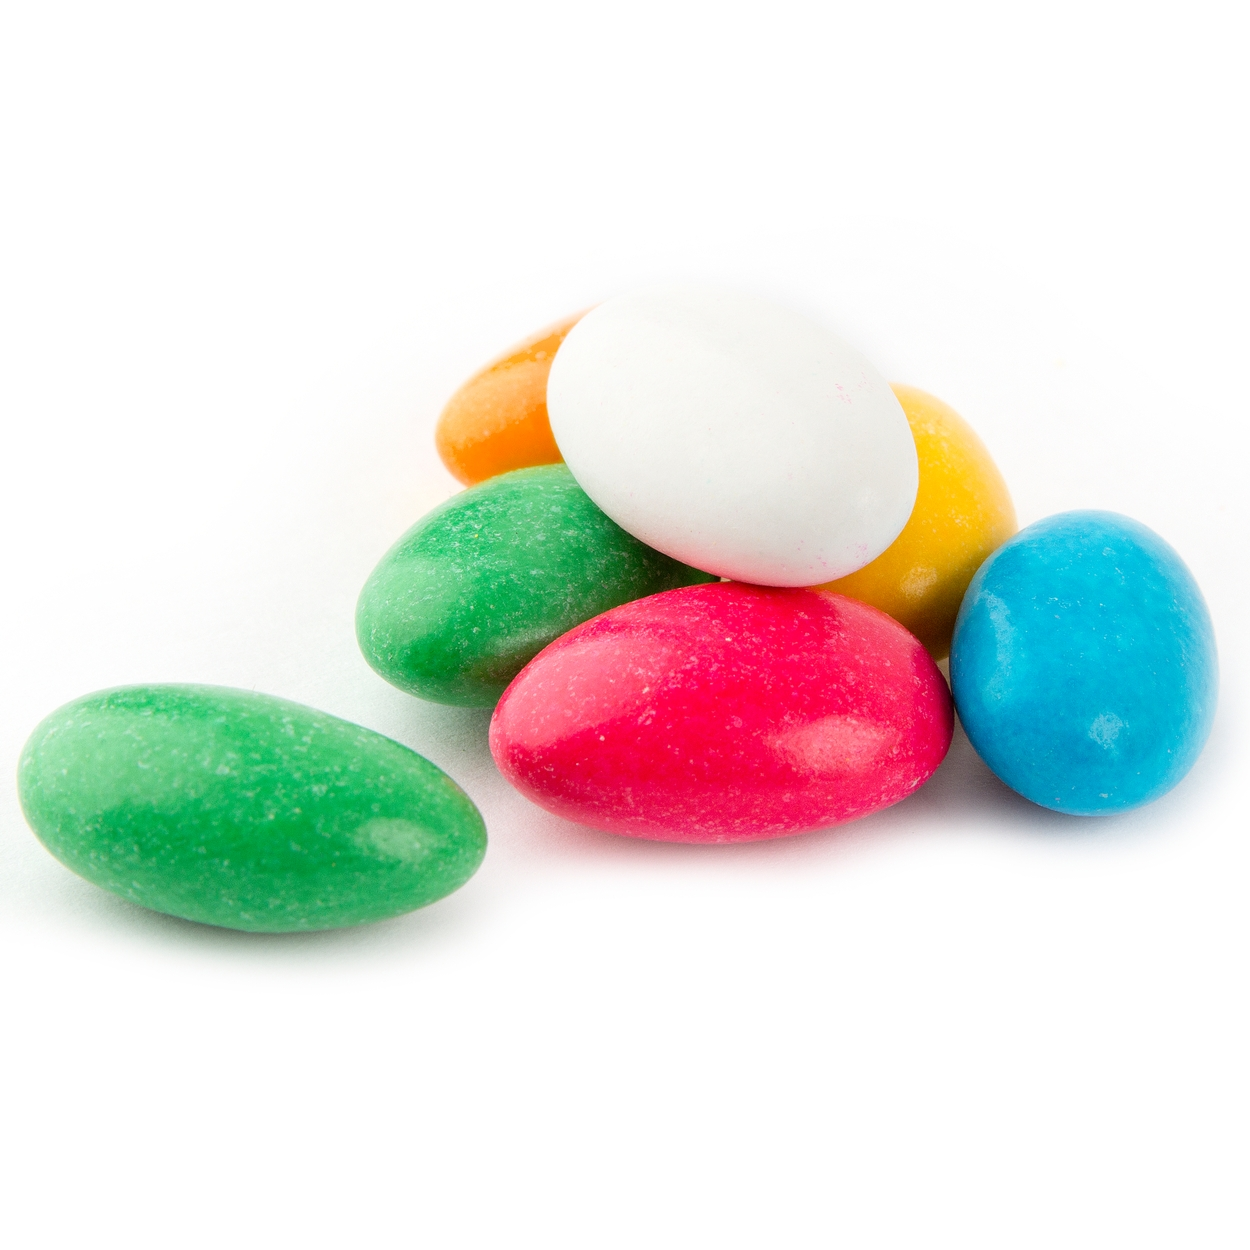 assorted sugar free jordan almonds